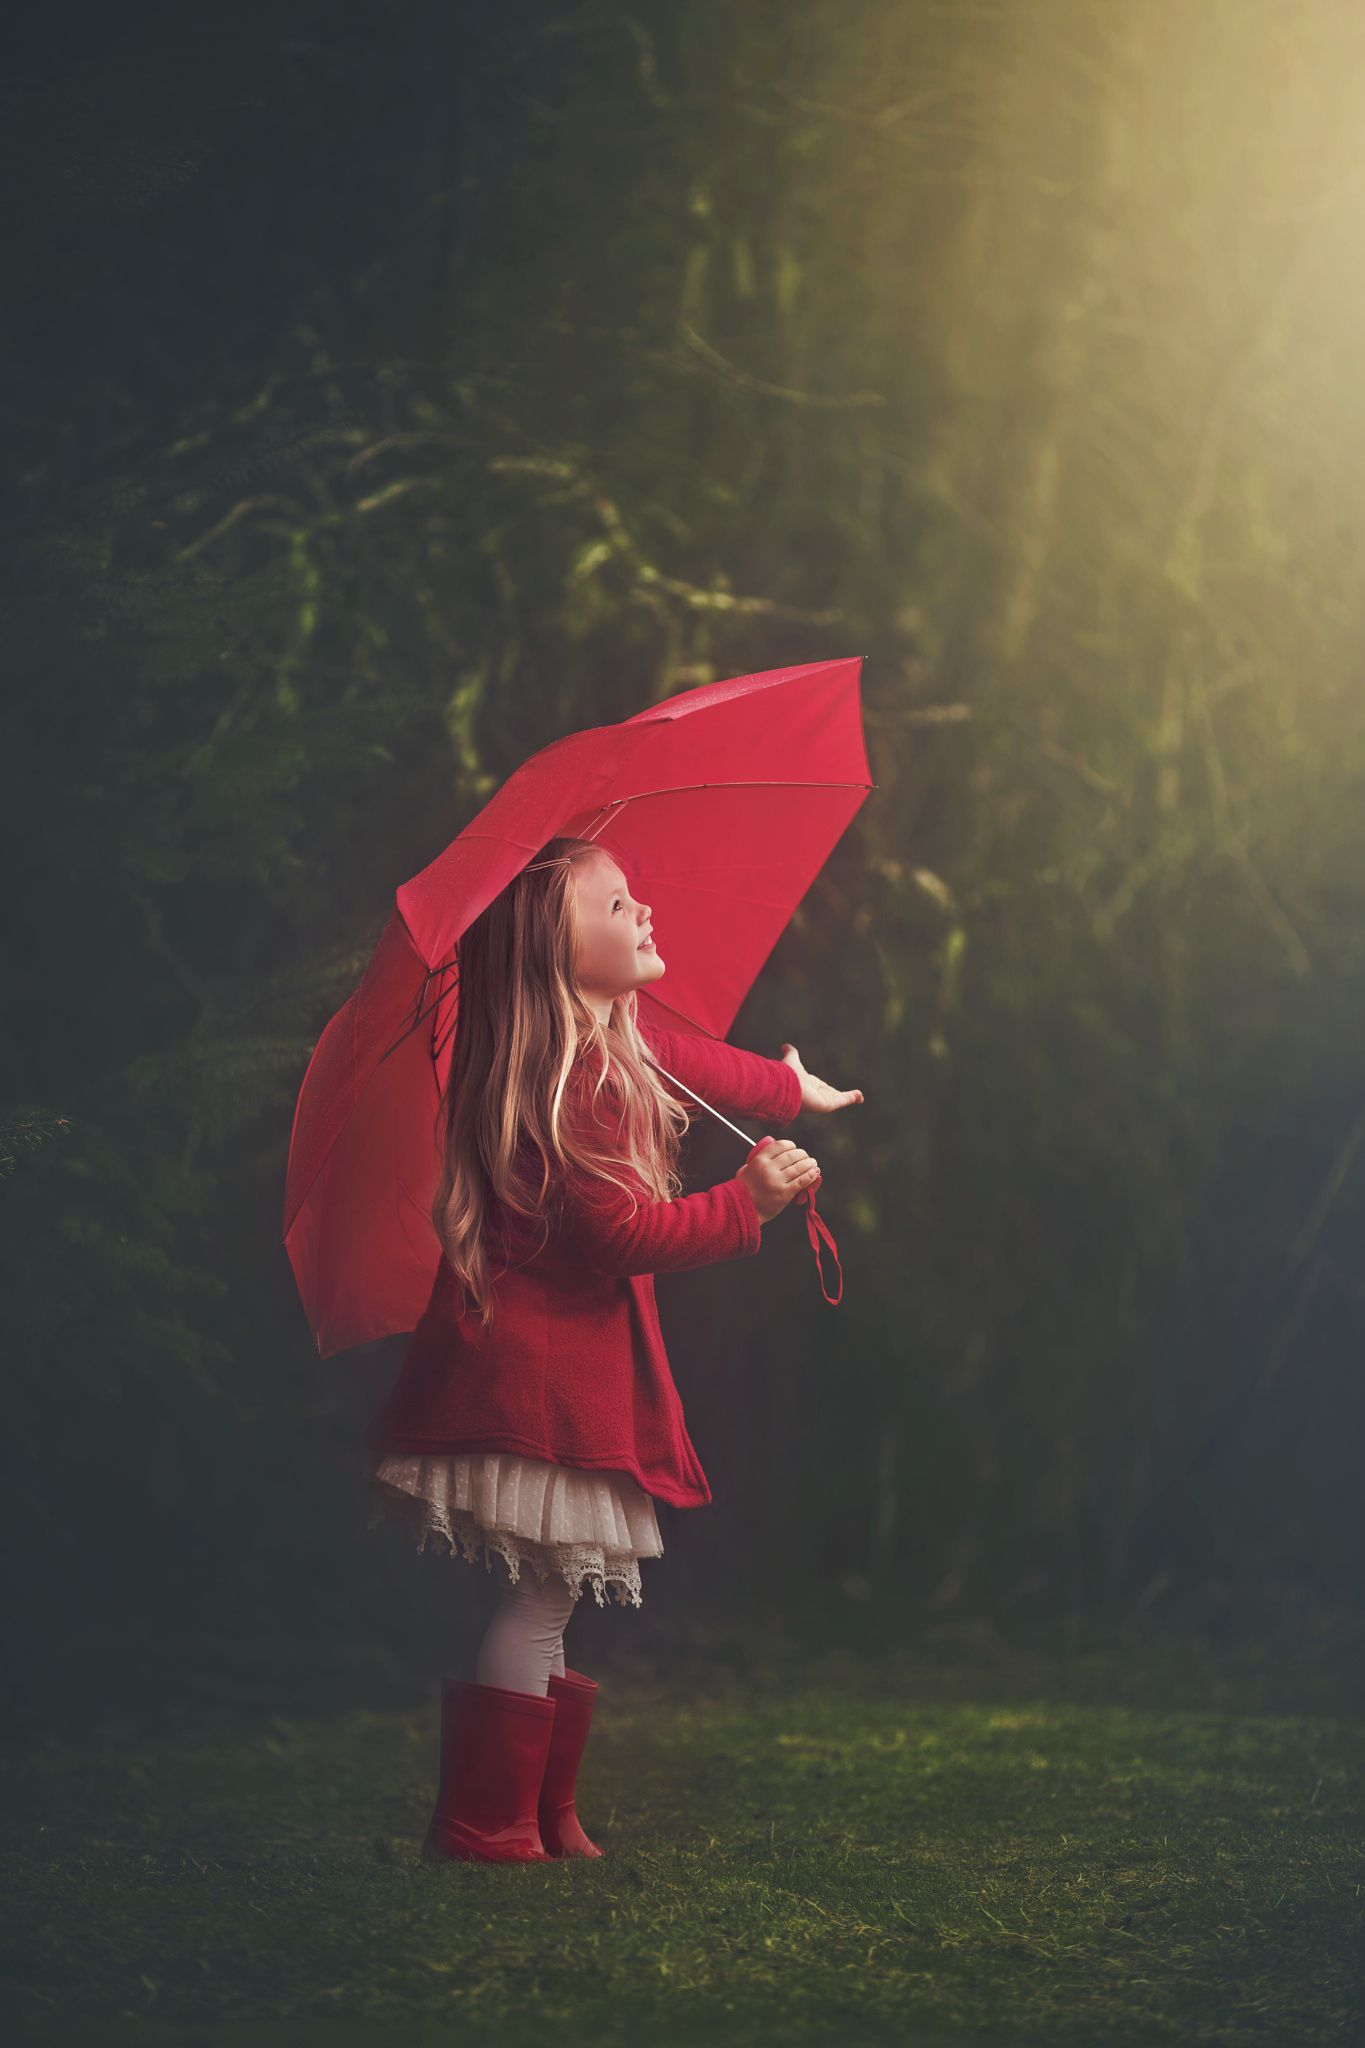 Little girl. A break in the weather! by Ashley Campbell on 500px